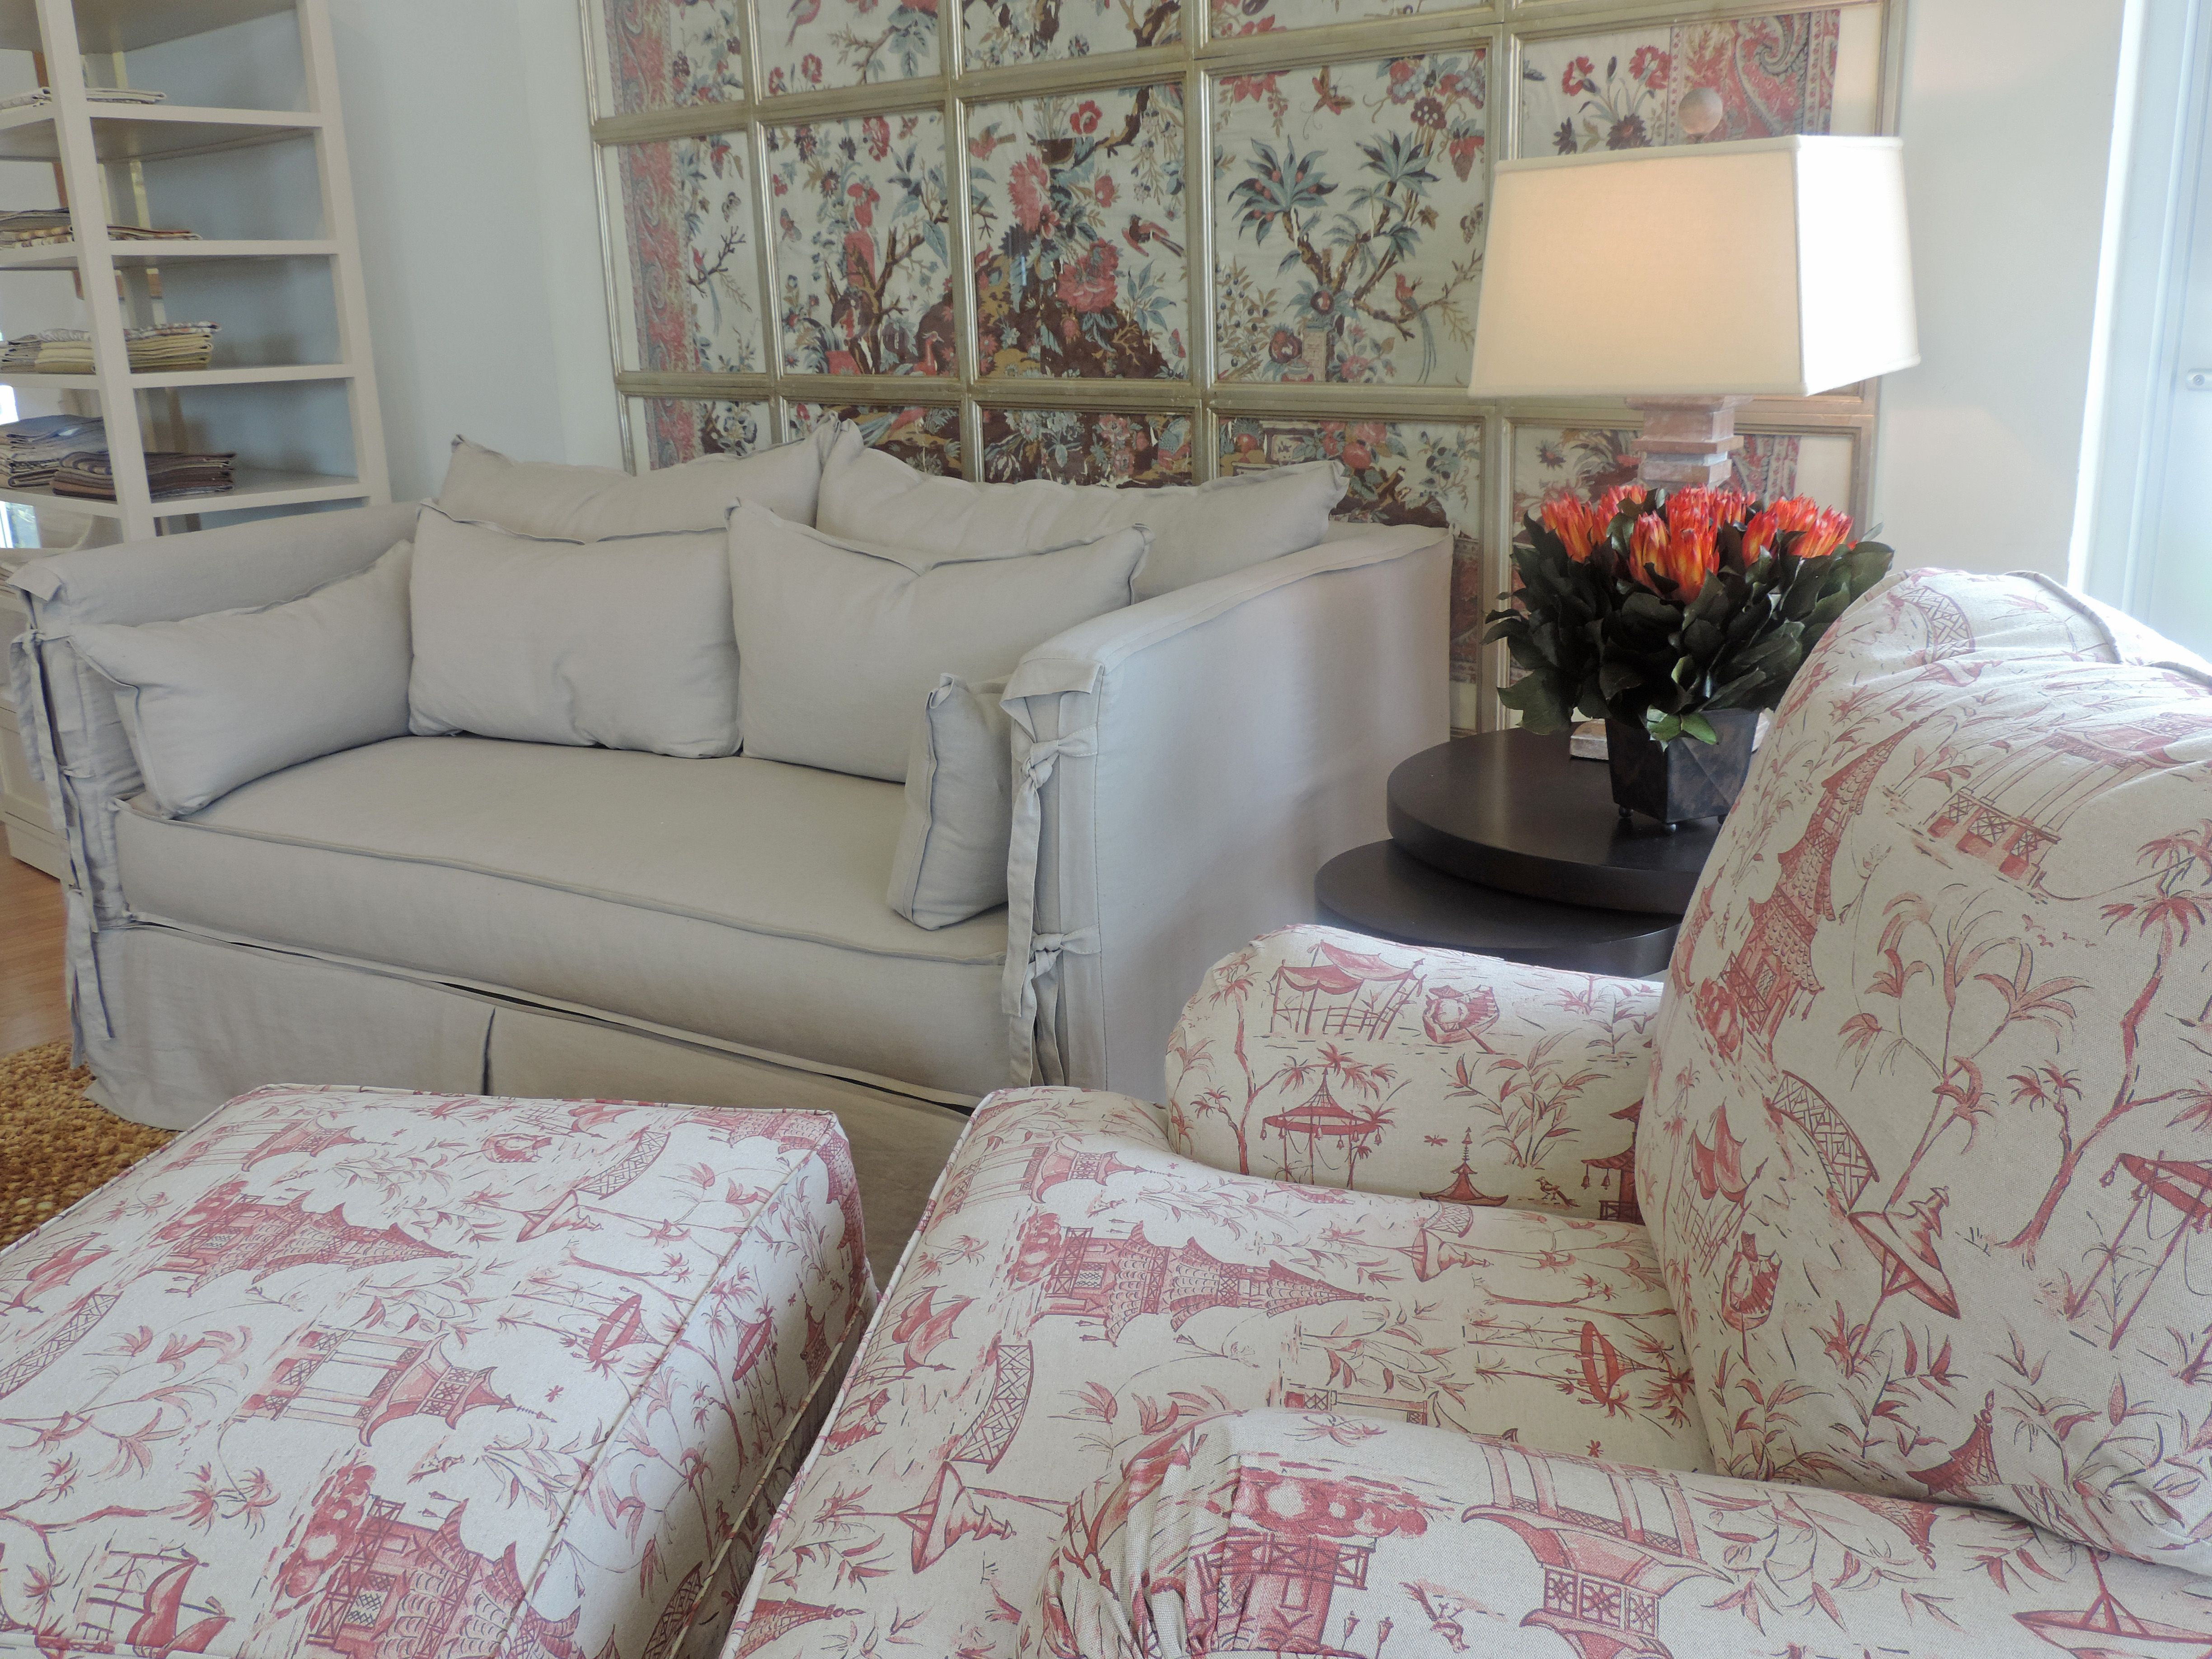 Sofa Slipcover Pattern P A Marketing Microfiber Reversible Cover Chateau With Arm Ties 43 Fun Fabric